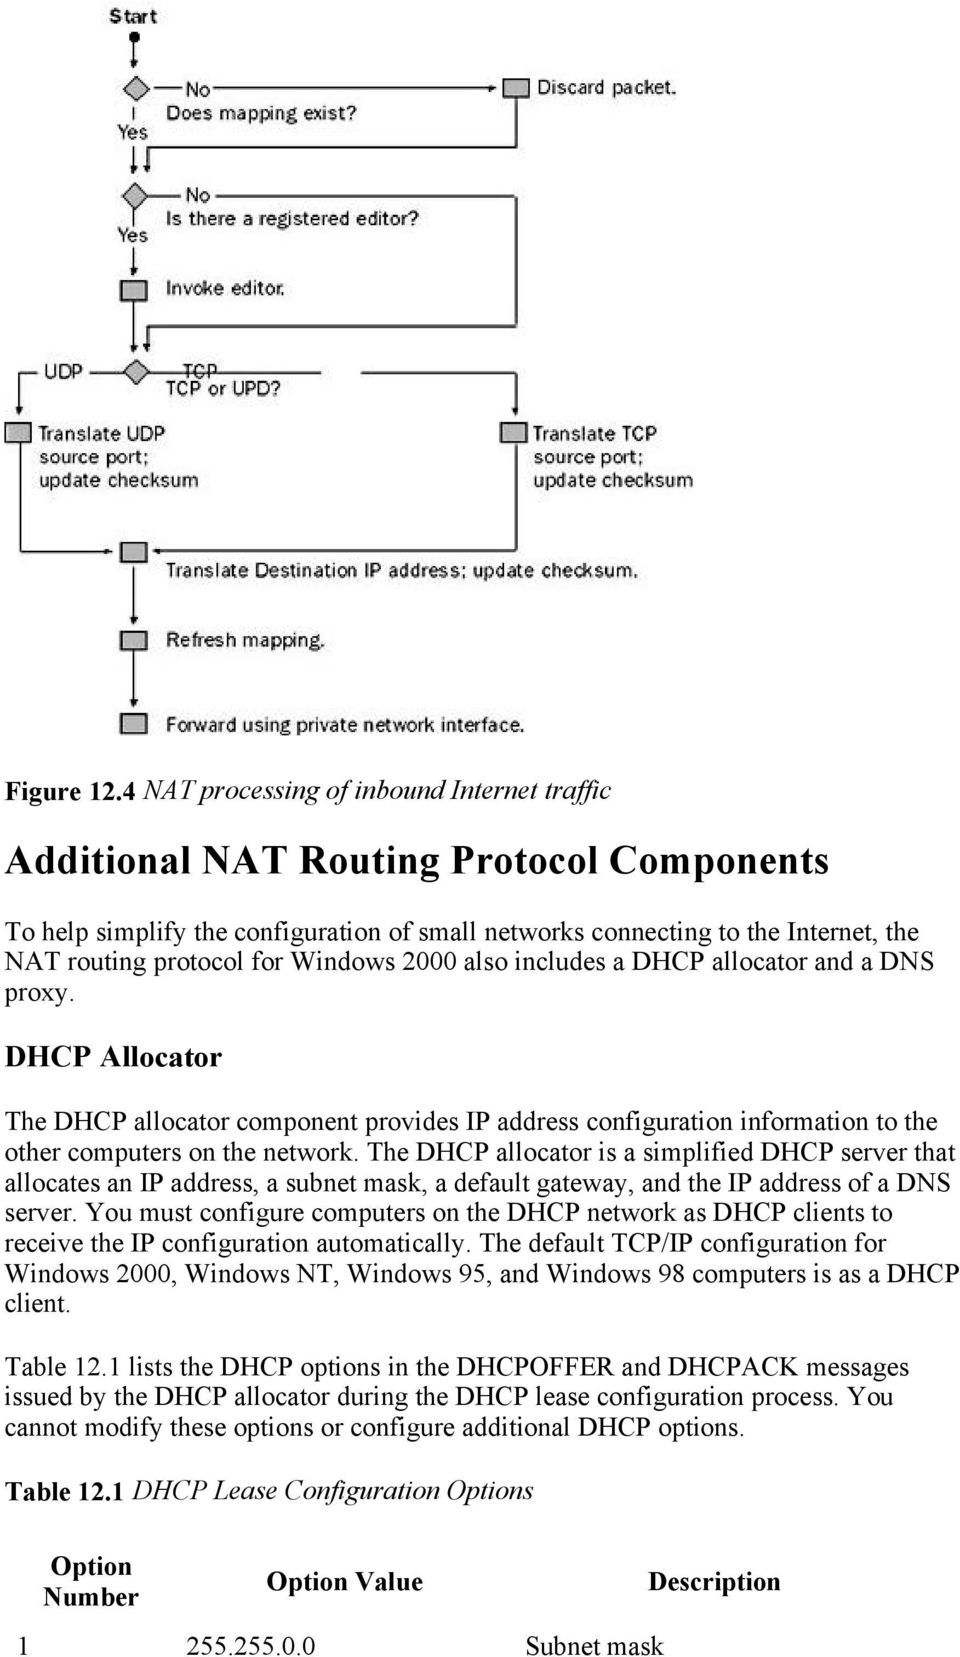 Windows 2000 also includes a DHCP allocator and a DNS proxy. DHCP Allocator The DHCP allocator component provides IP address configuration information to the other computers on the network.